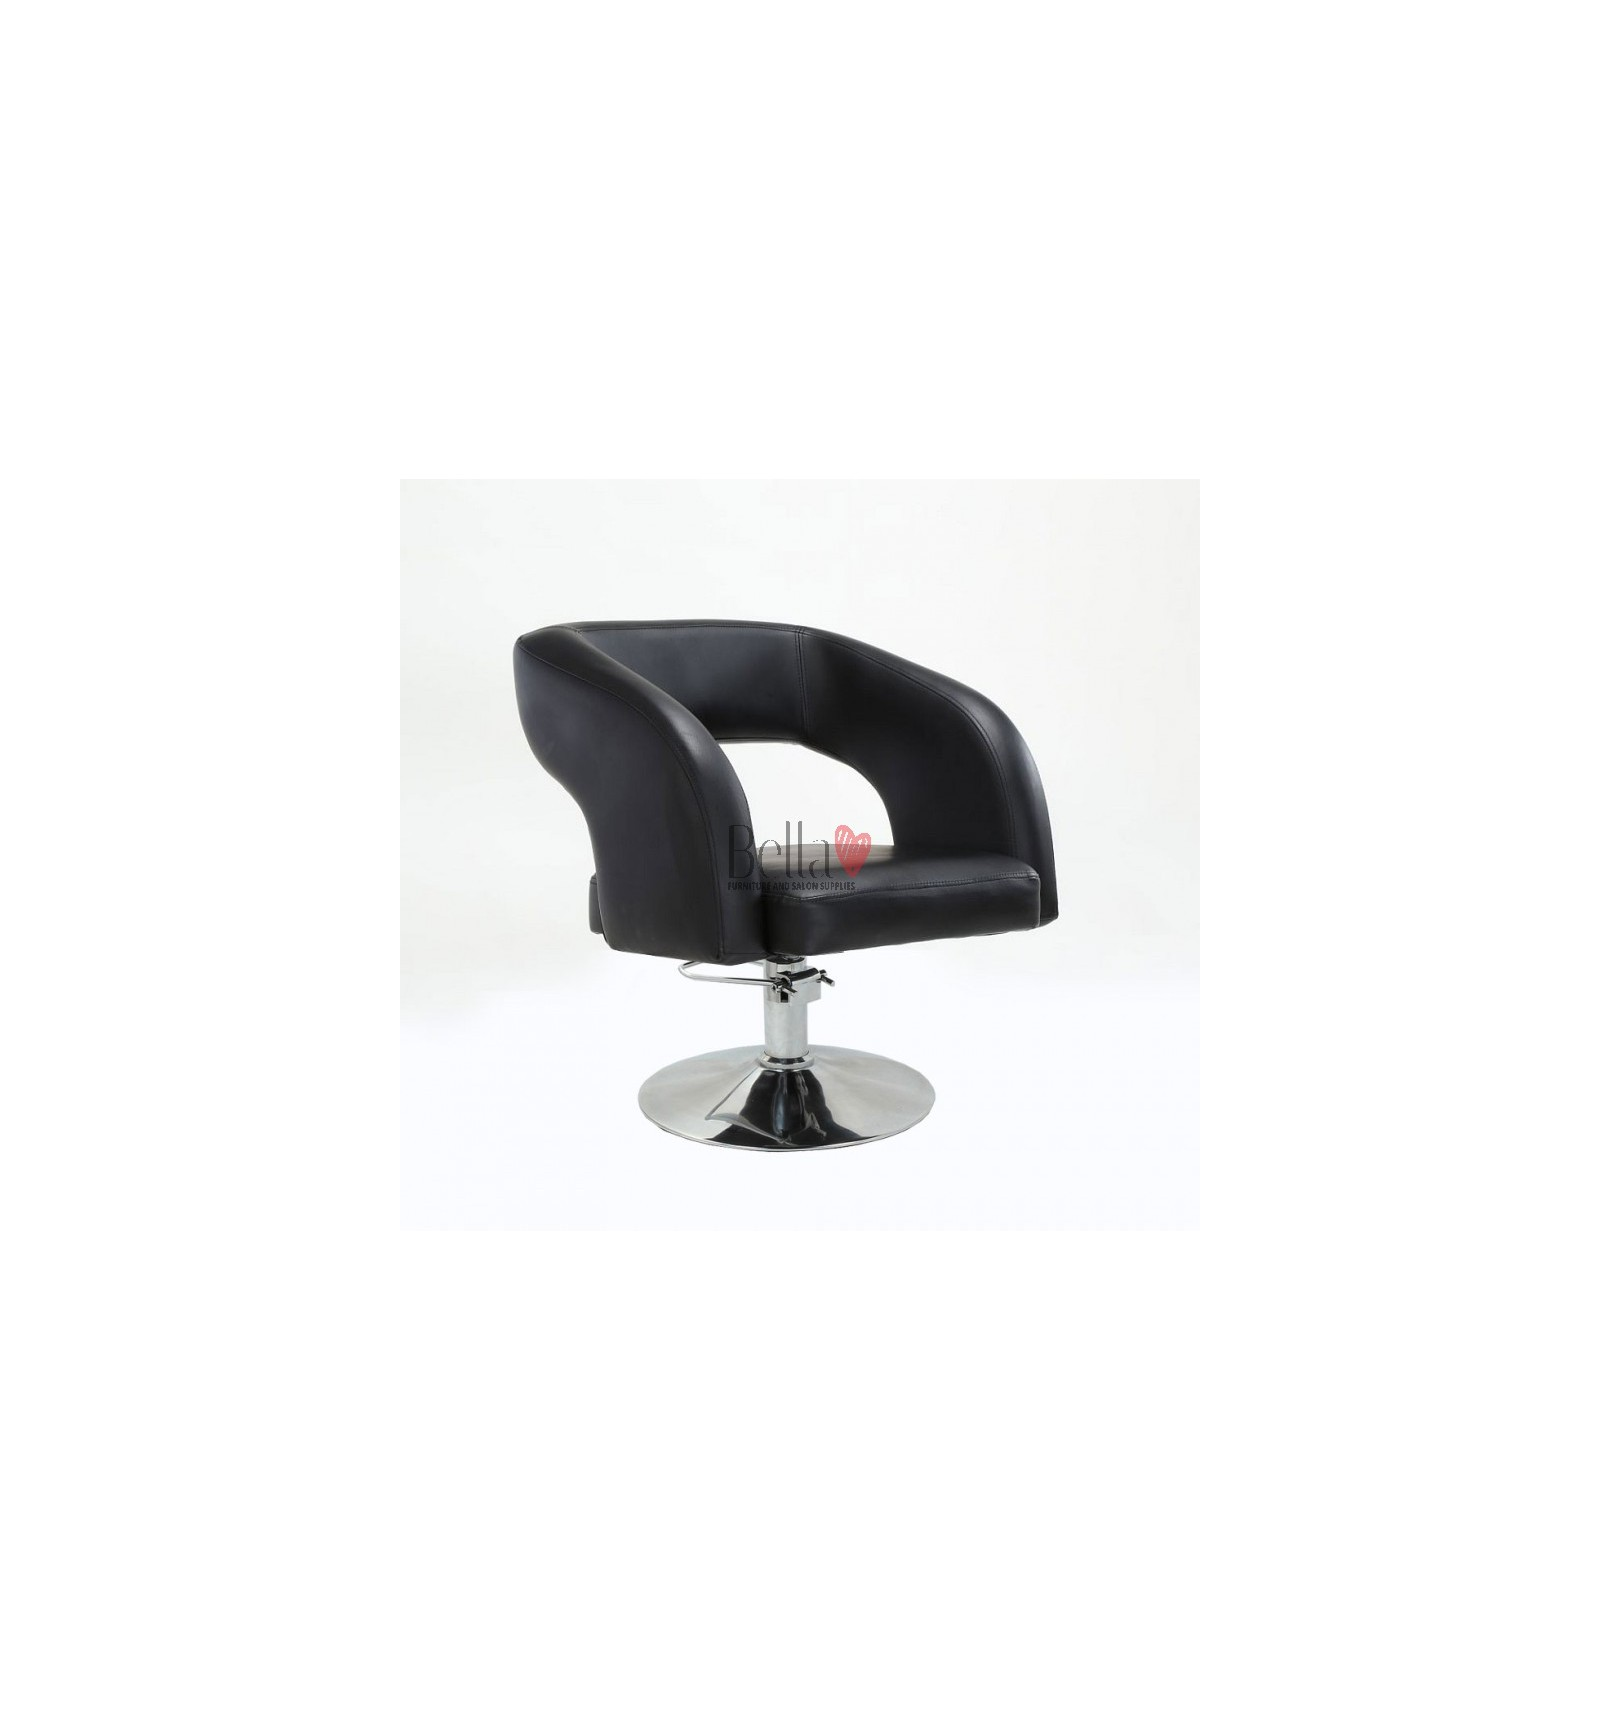 hydraulic chair for sale huge pillow chairs ireland